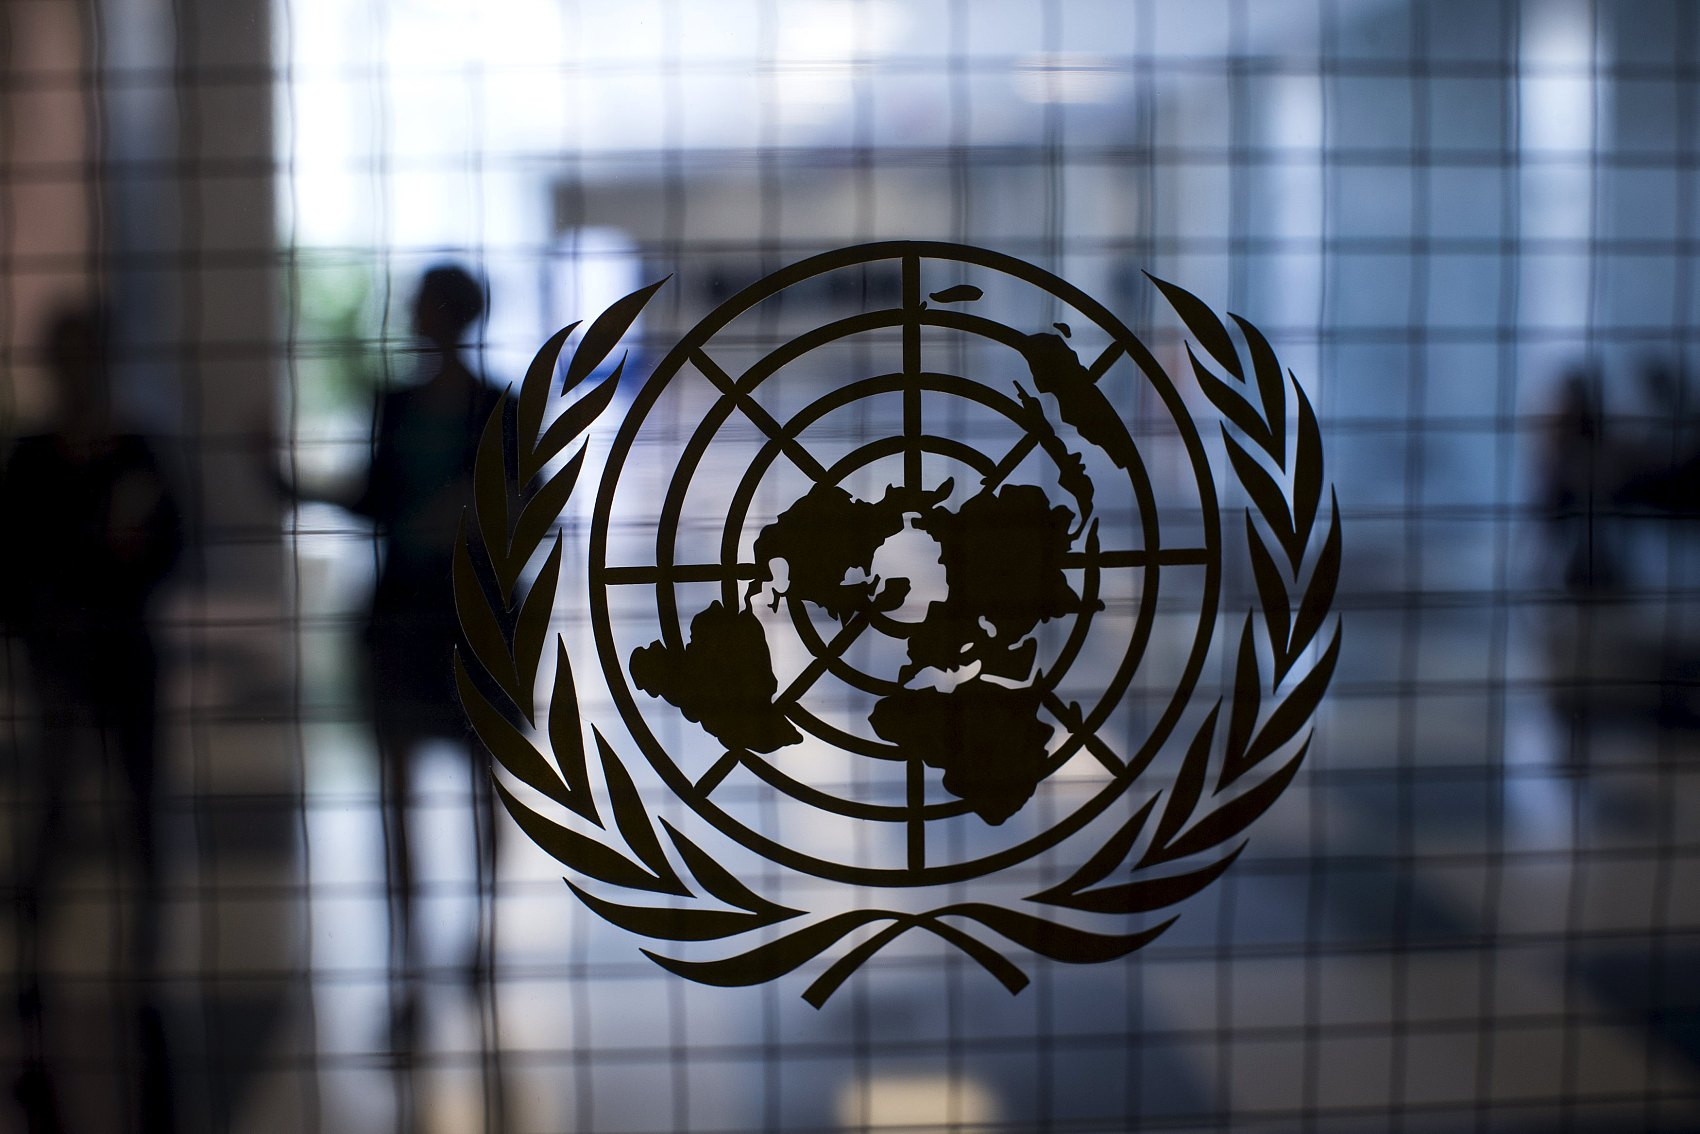 Chinese envoy deposits instrument of accession to arms trade treaty to UN chief